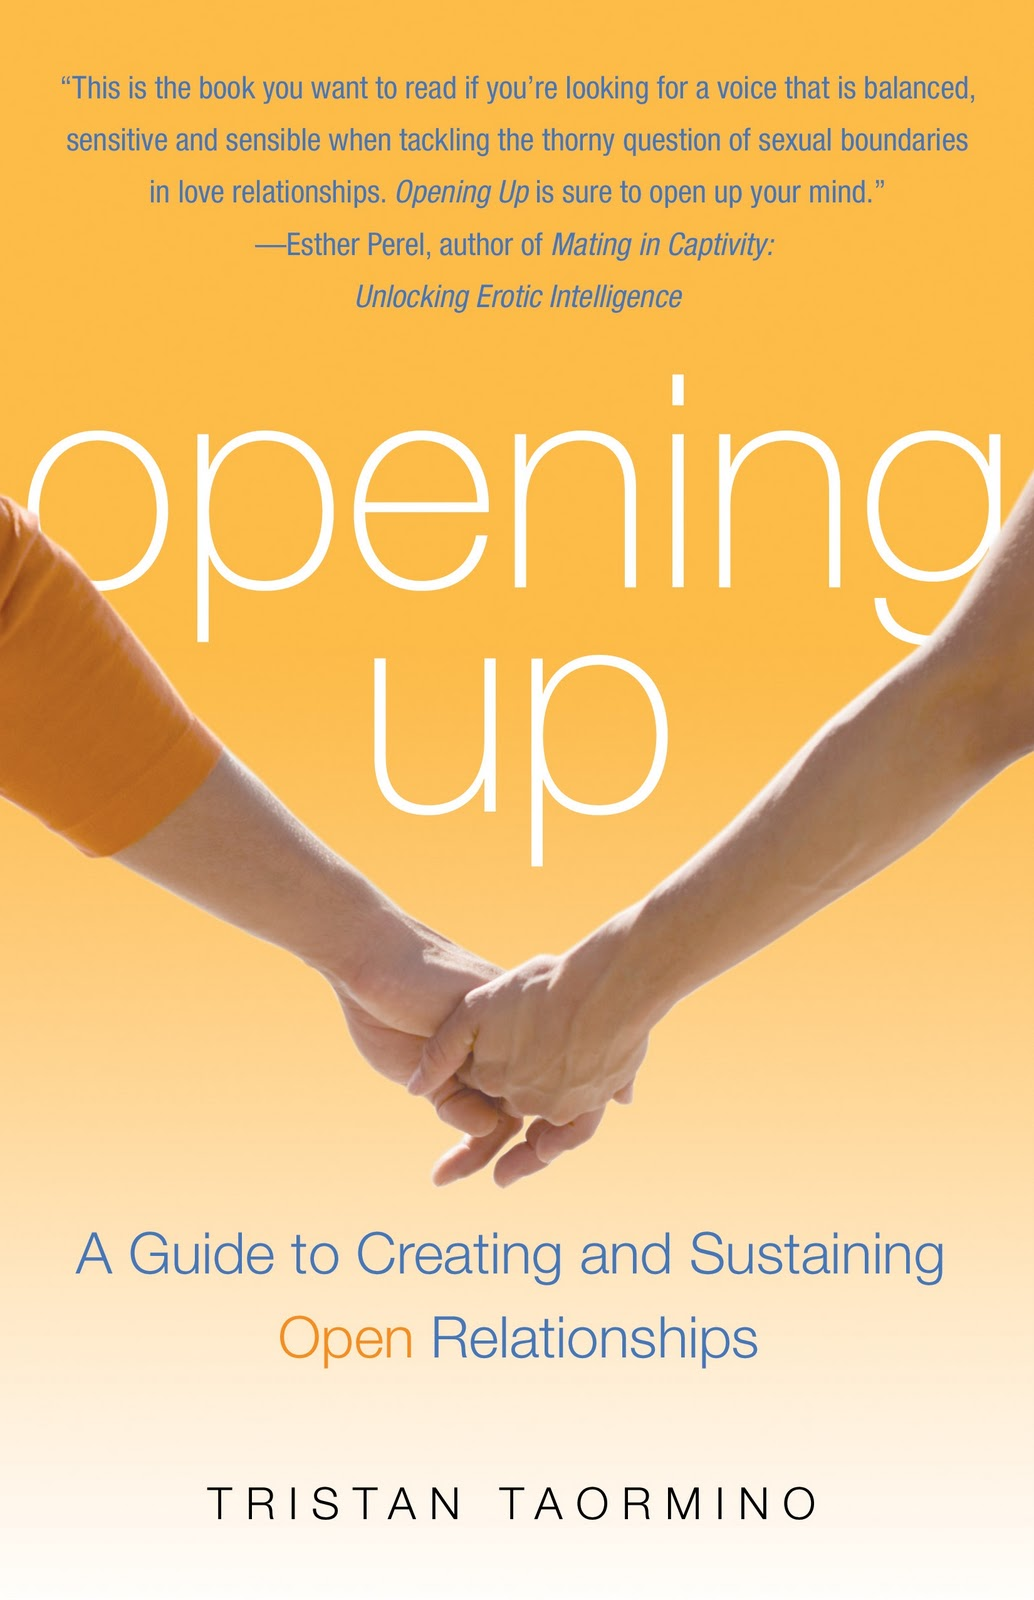 book review opening up by Opening up: a guide to creating and sustaining open relationships by tristan toarmino.